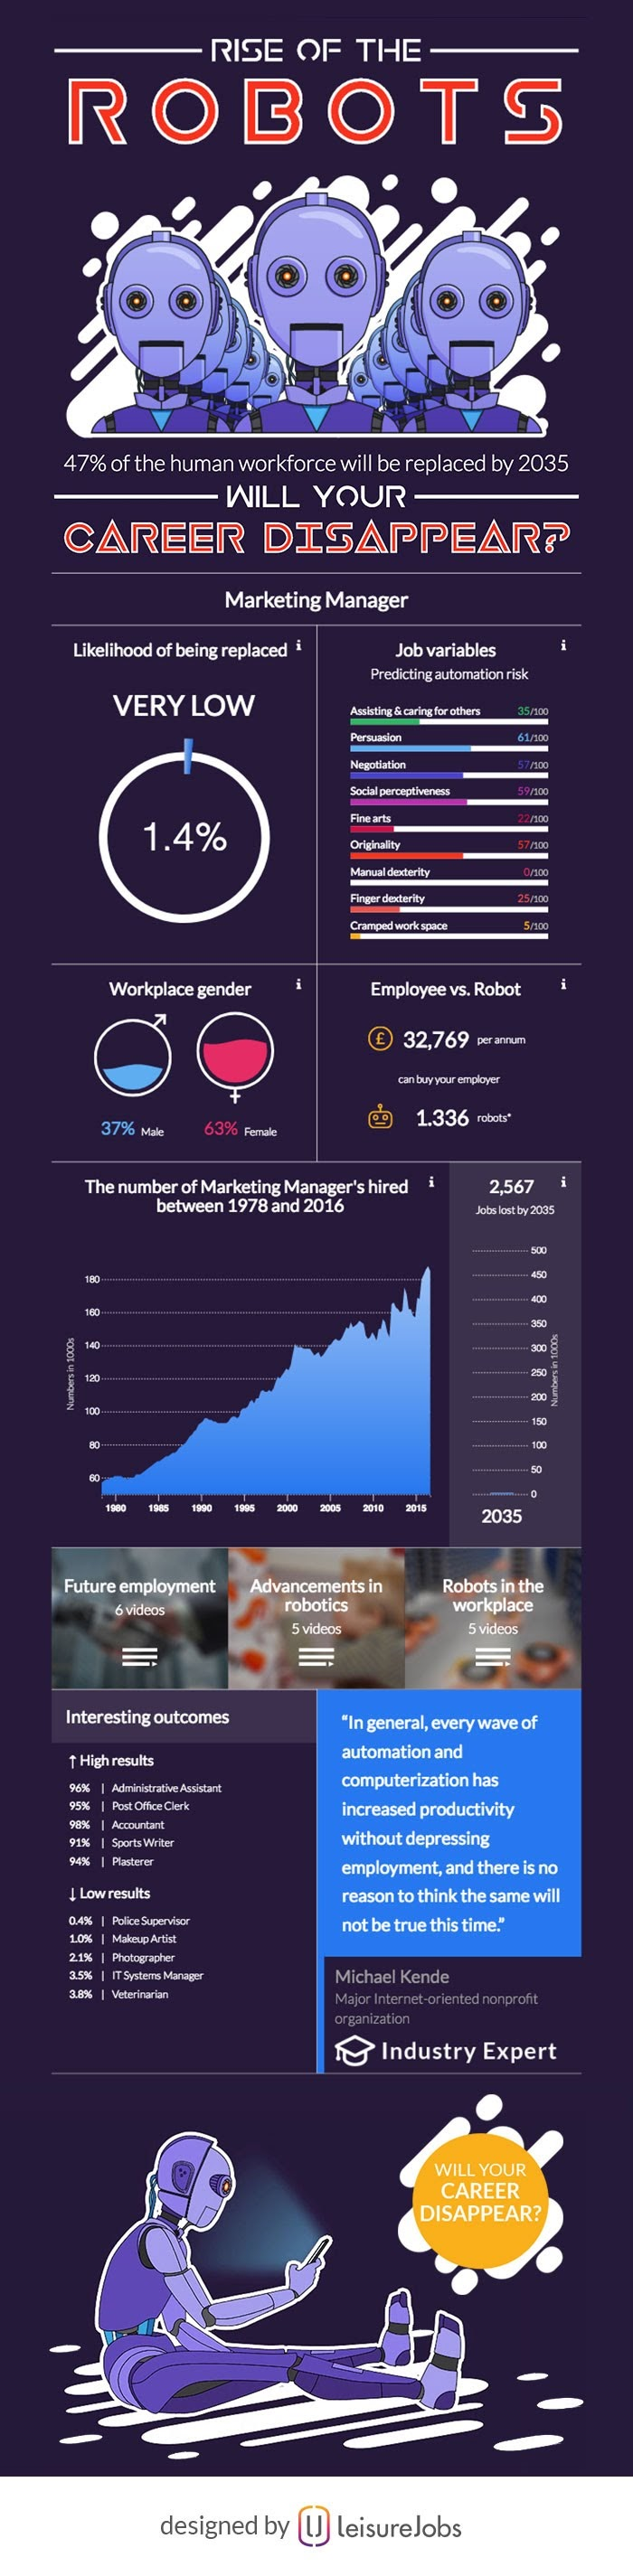 Rise Of The Robots: Will Your Career Disappear? - #infographic